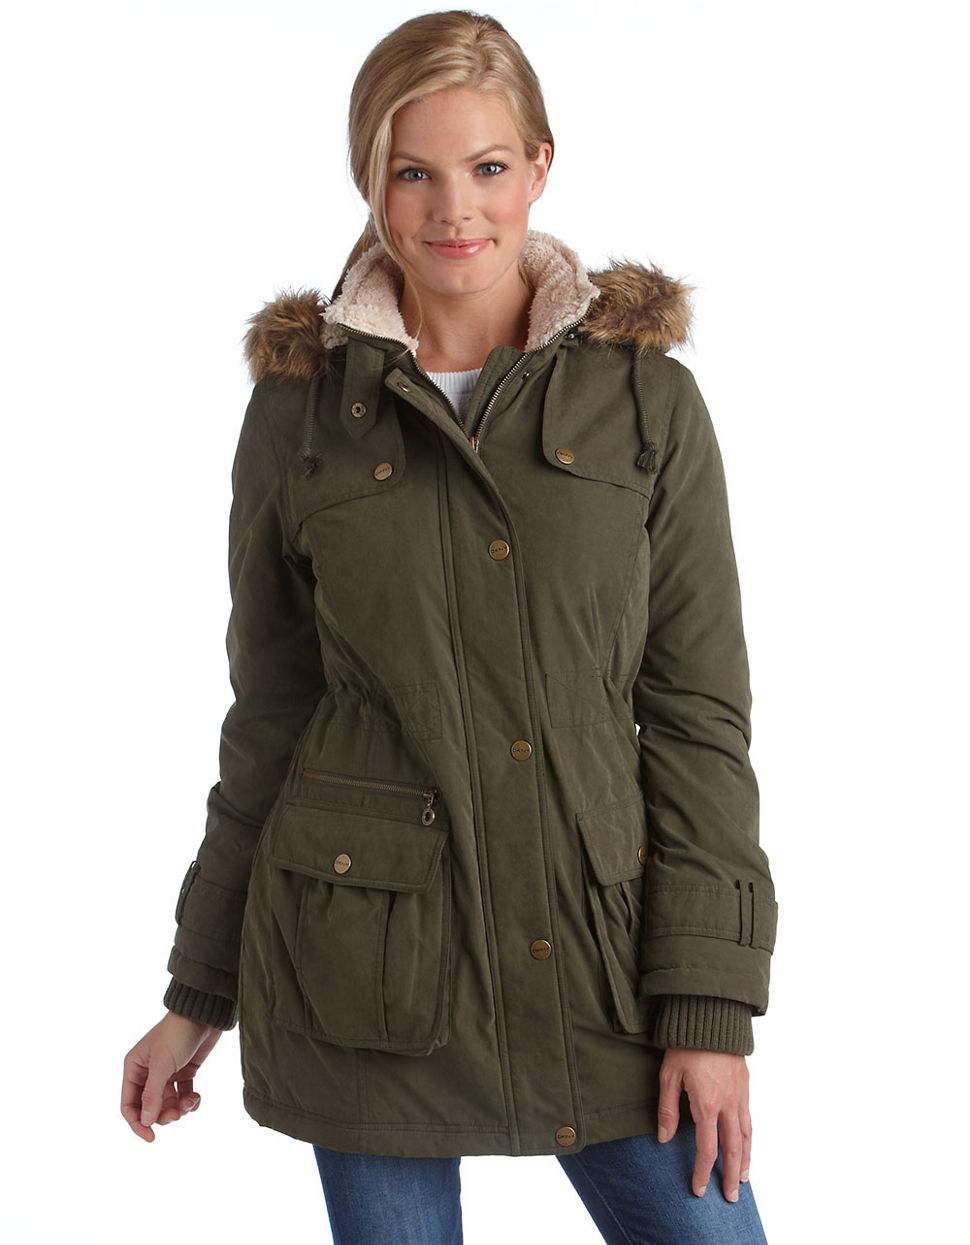 Lyst - Dkny Faux Fur Hooded Anorak Jacket in Green